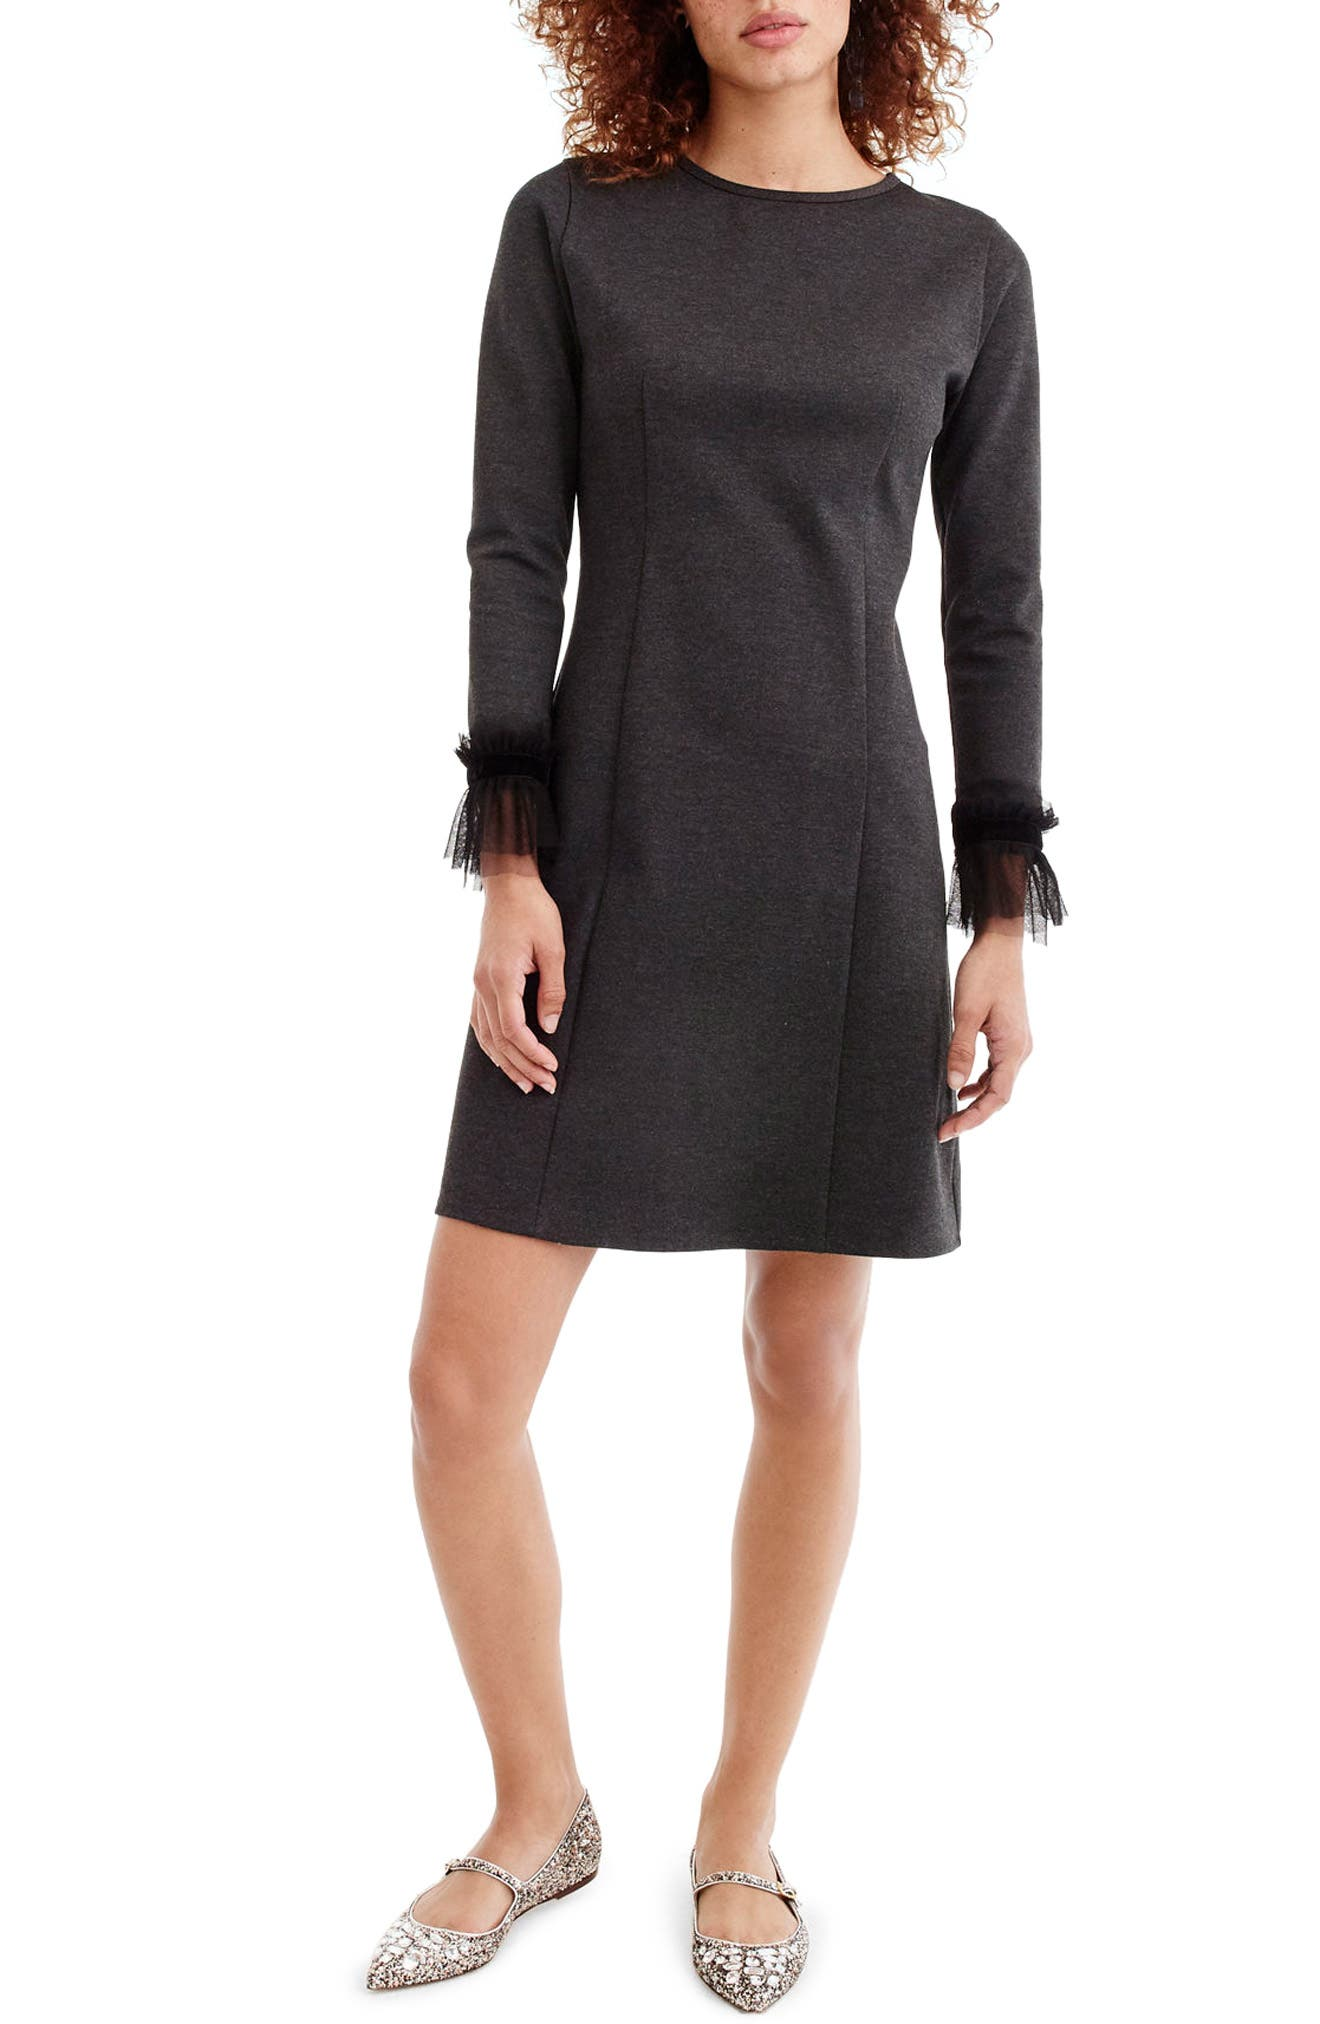 Storm Ponte Knit Dress,                             Main thumbnail 1, color,                             001